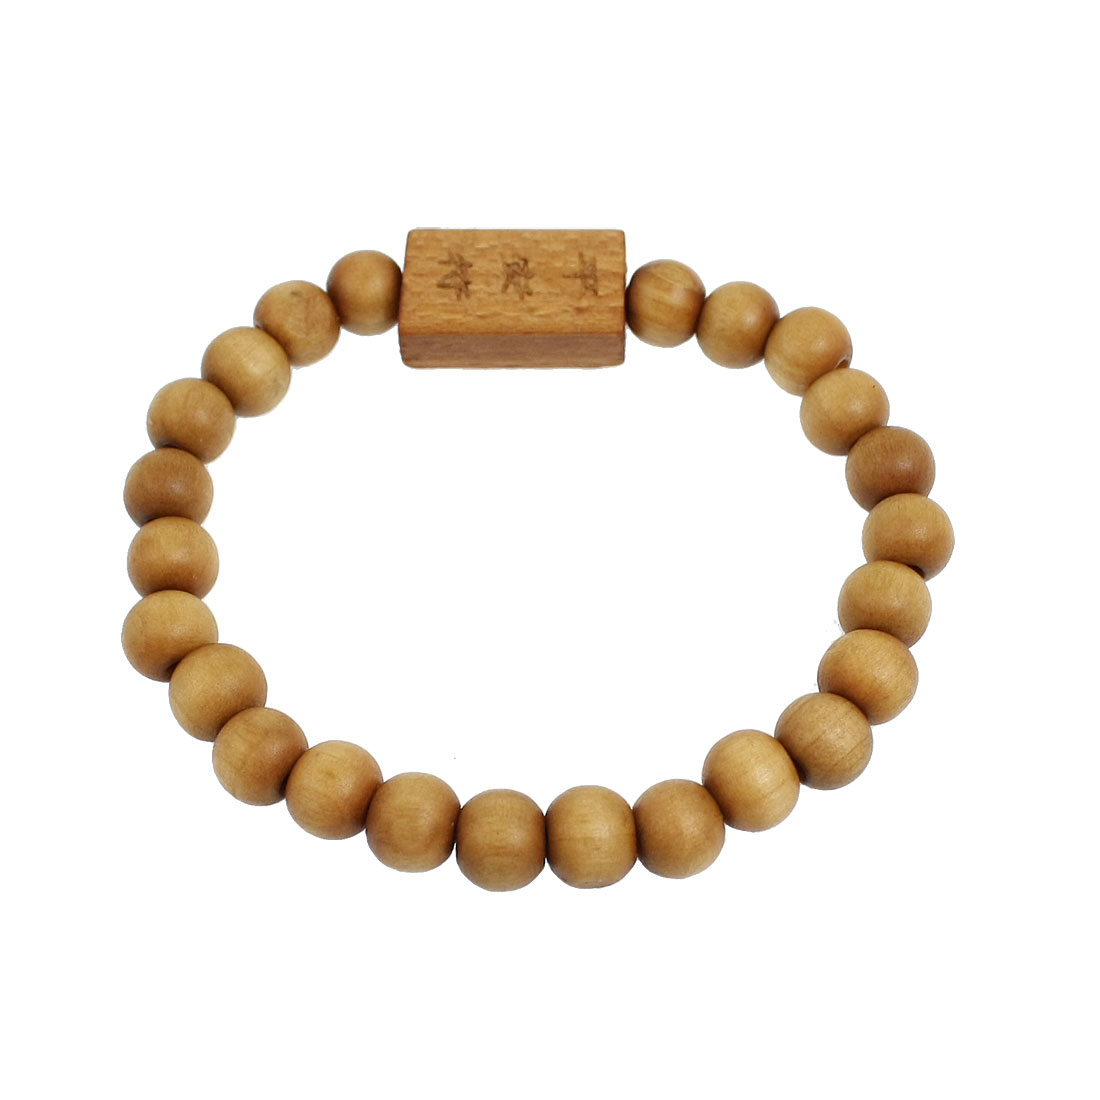 "Brown Wood Beads Chinese Character Words Buddha Carved Bracelet 8.2"" Girth"